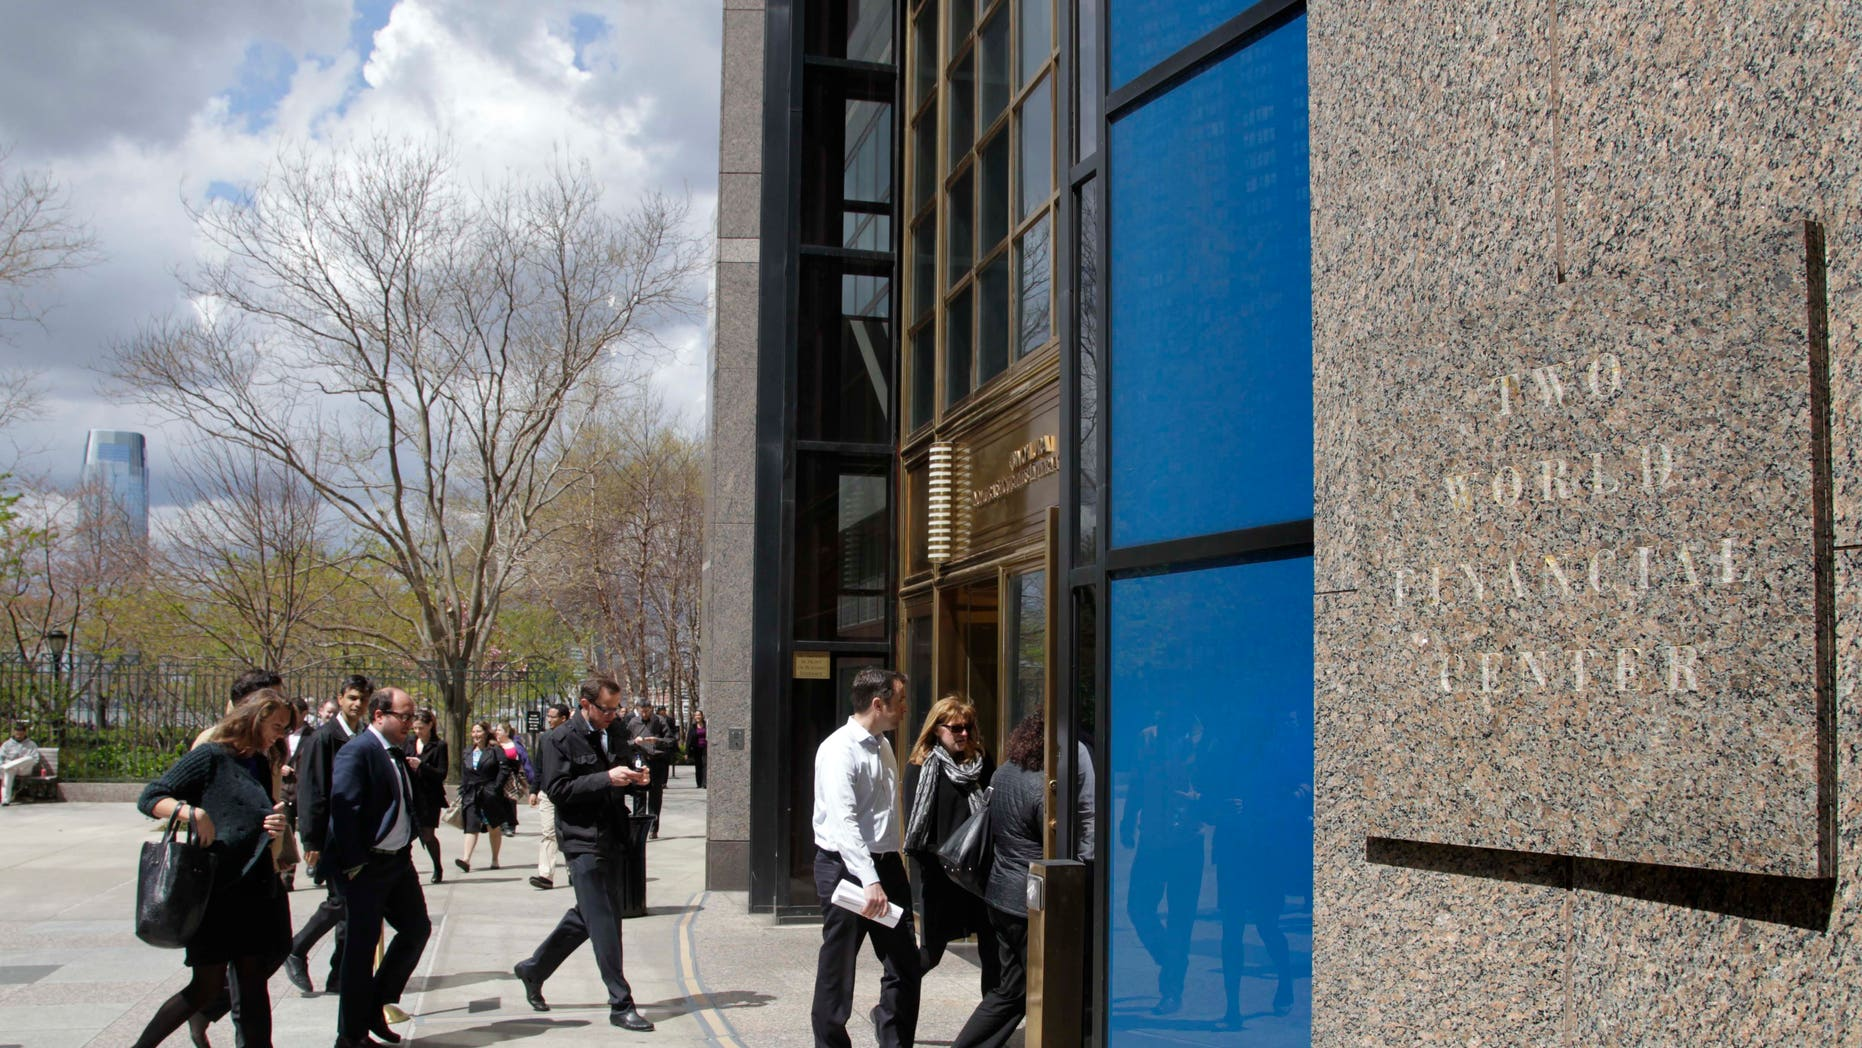 Office workers return to Two World Financial Center after it was briefly evacuated in New York, Thursday, April 12, 2012. Authorities say an evacuation was ordered as a precaution at a World Financial Center building after a security guard reported a package that seemed suspicious. (AP Photo/Seth Wenig)